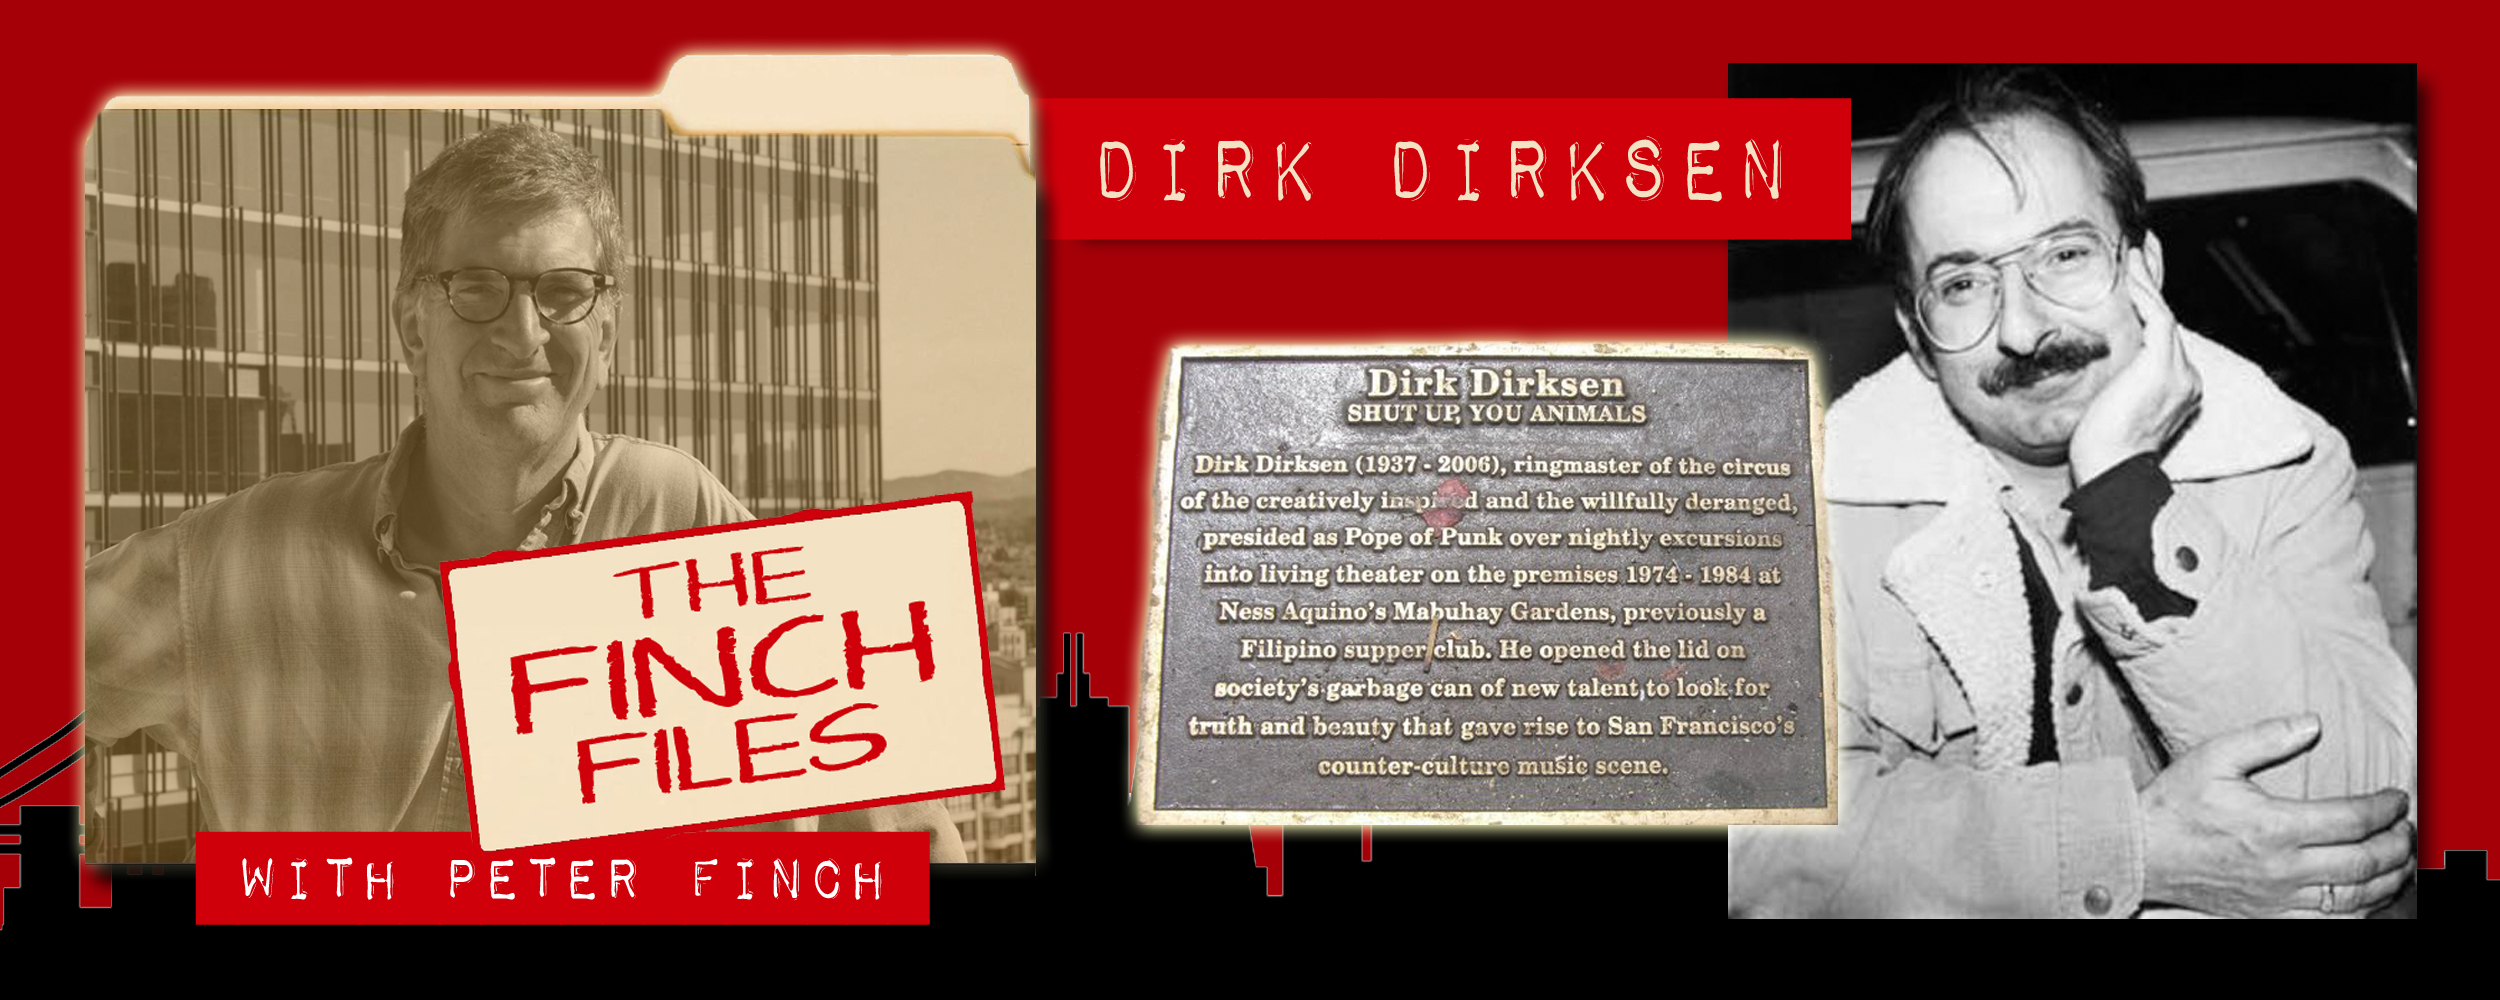 The Finch Files: Dirk Dirksen